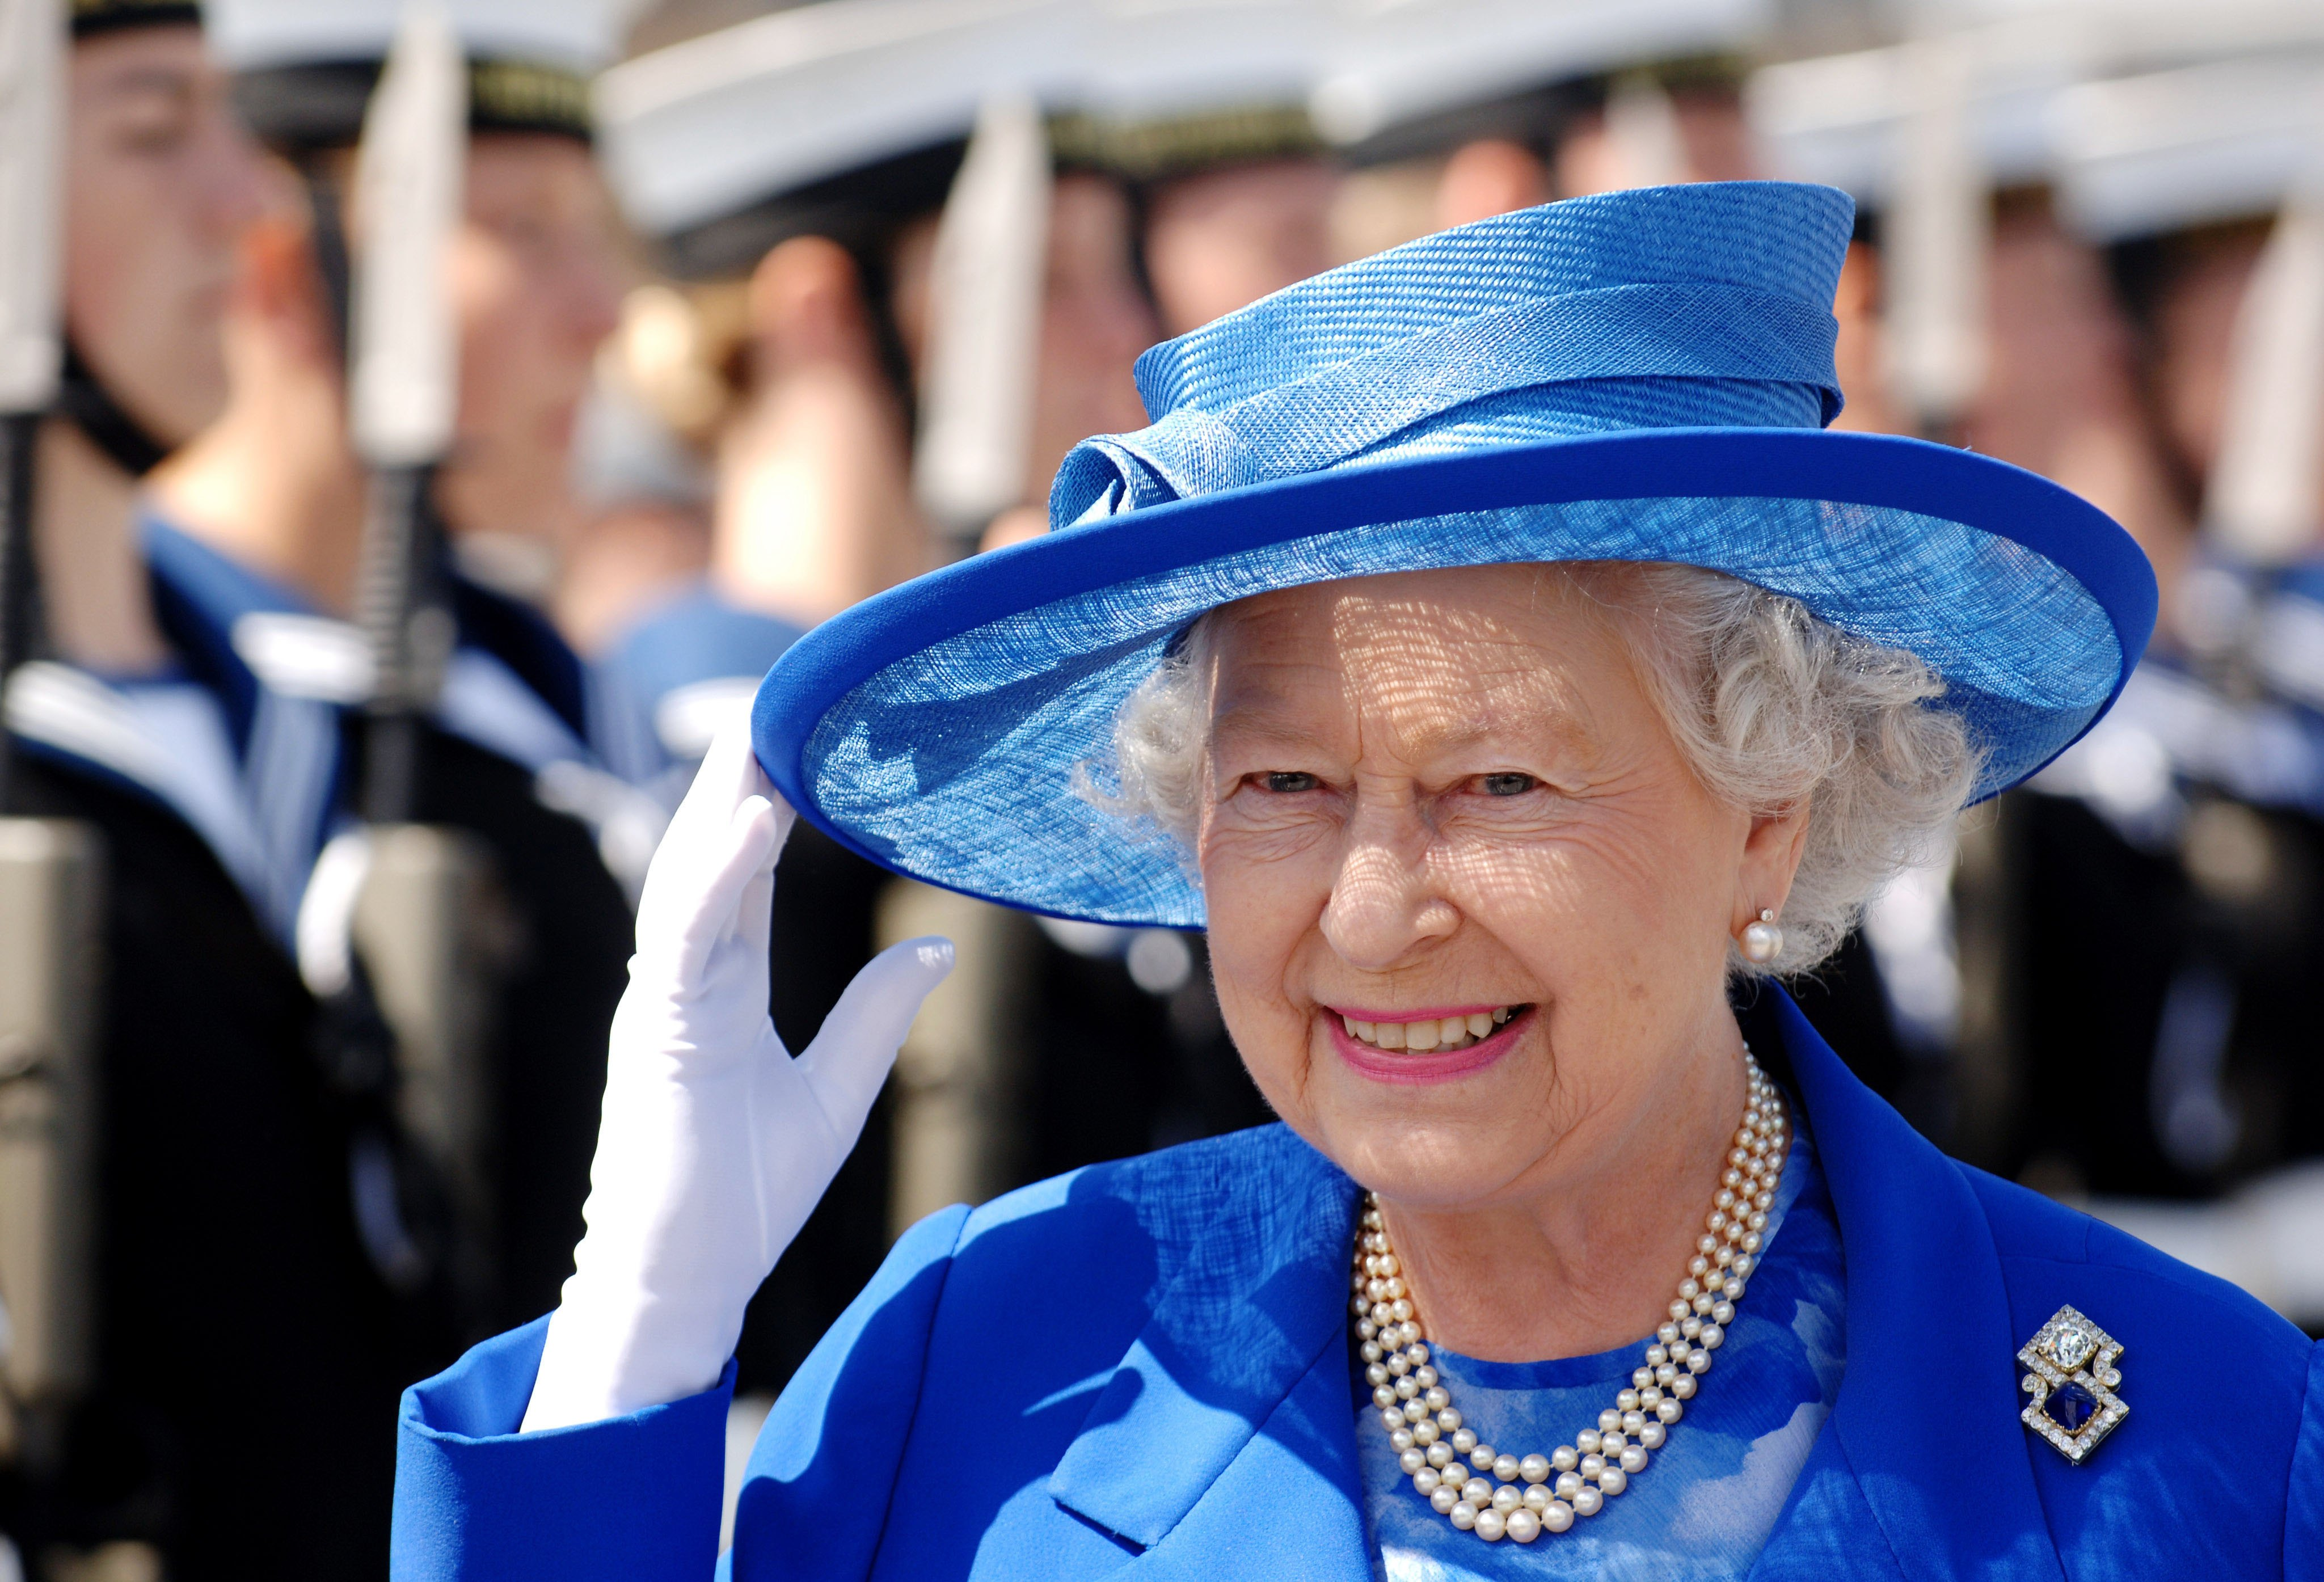 Queen Elizabeth II visits HMS Albion for the 250th anniversary of the Marine Society and Sea Cadets on July 14, 2006 in Greenwich, London, England.